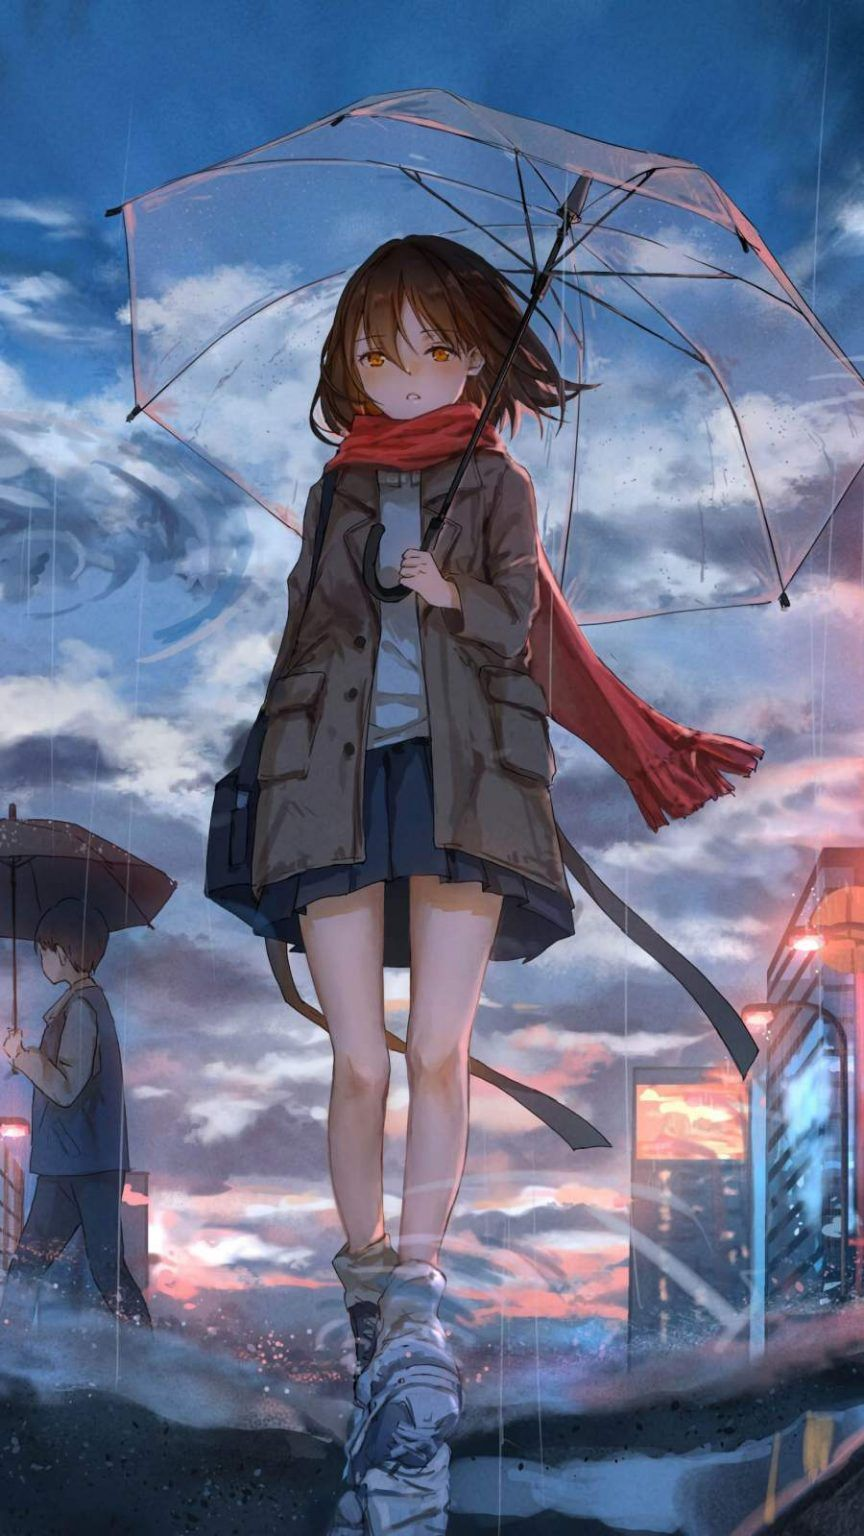 Iphone Wallpapers Page 8 Of 909 Wallpapers For Iphone 12 Iphone 11 And Iphone X Iphone Wallpapers Di 2021 Anime Neko Gadis Animasi Anime Kawaii 21 anime wallpaper for iphone x